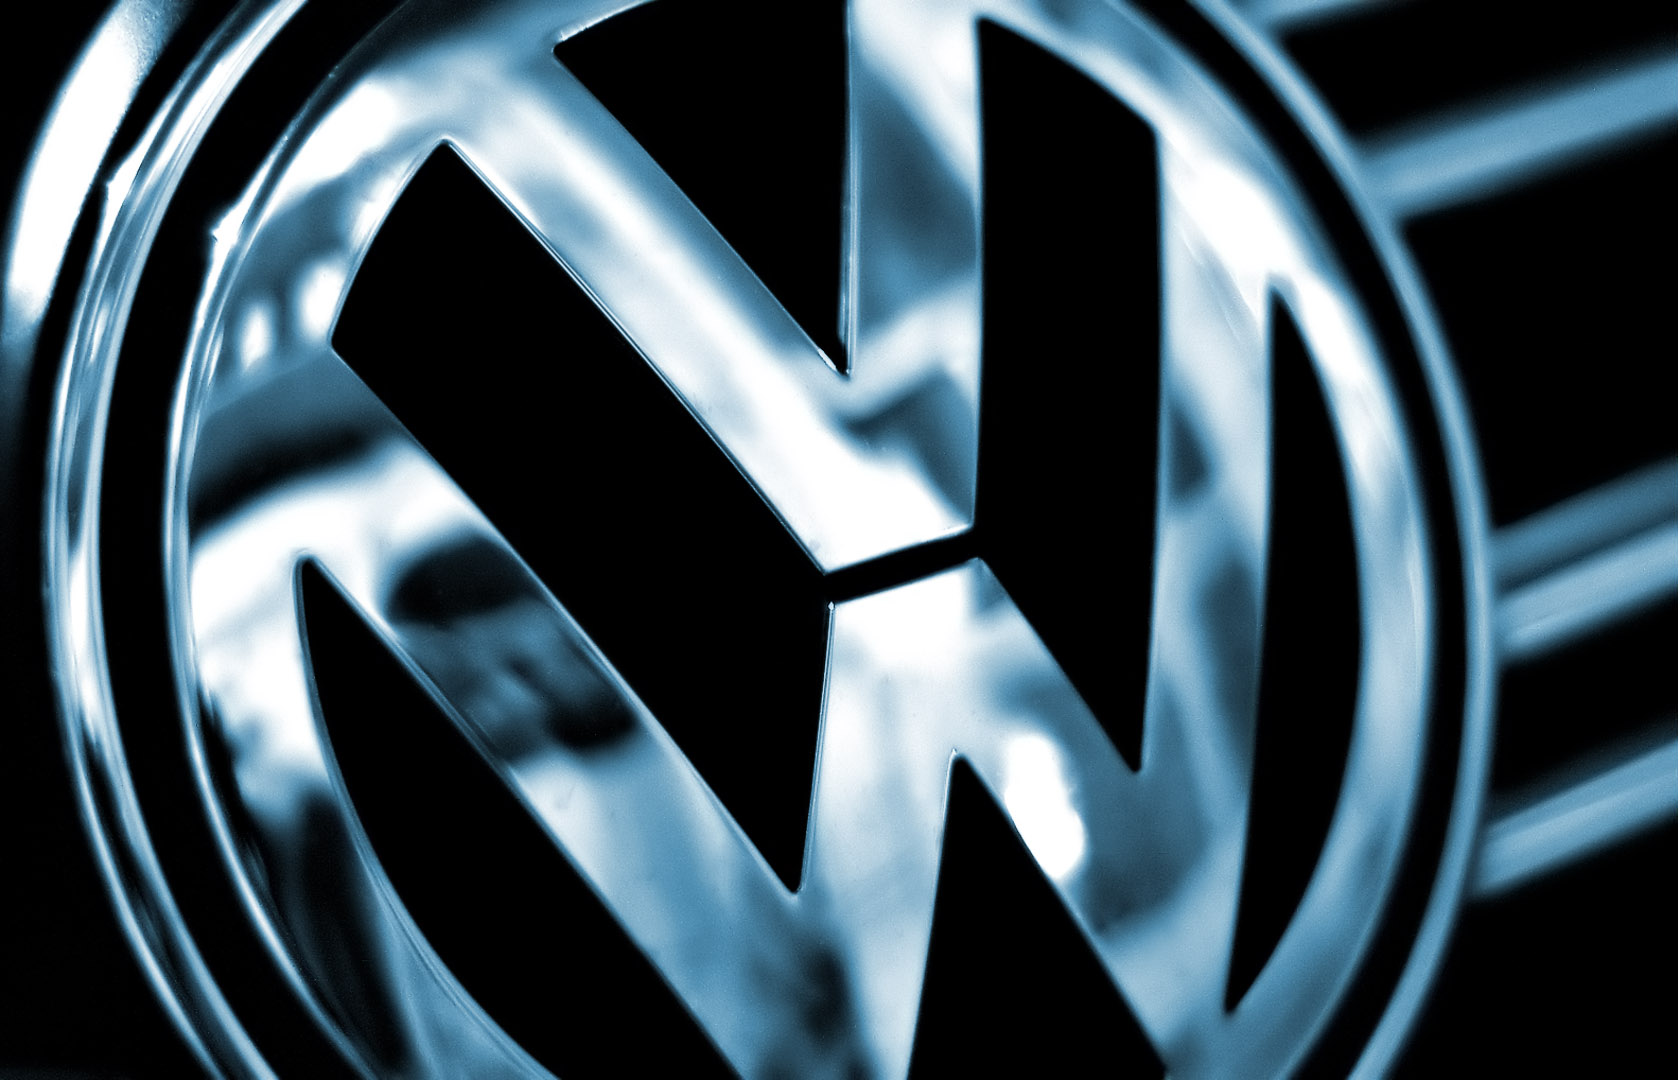 The best collections of vw logo